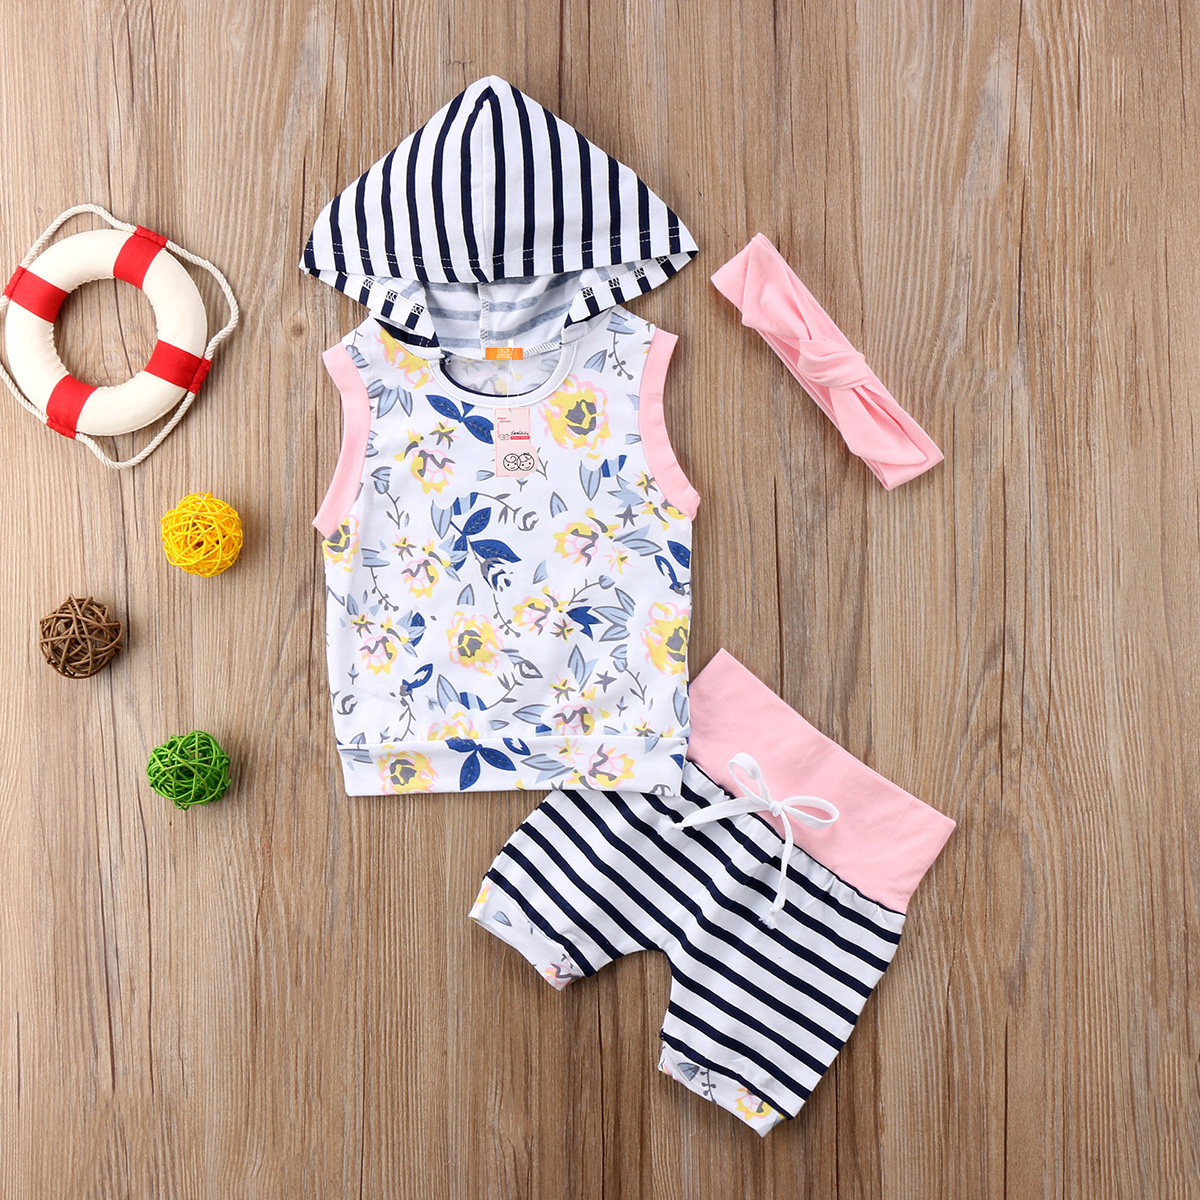 Summer new casual Newborn Infant Baby Kid Girls sleeveless Floral printed striped patchwrok hooded tank top +shorts Outfits Set